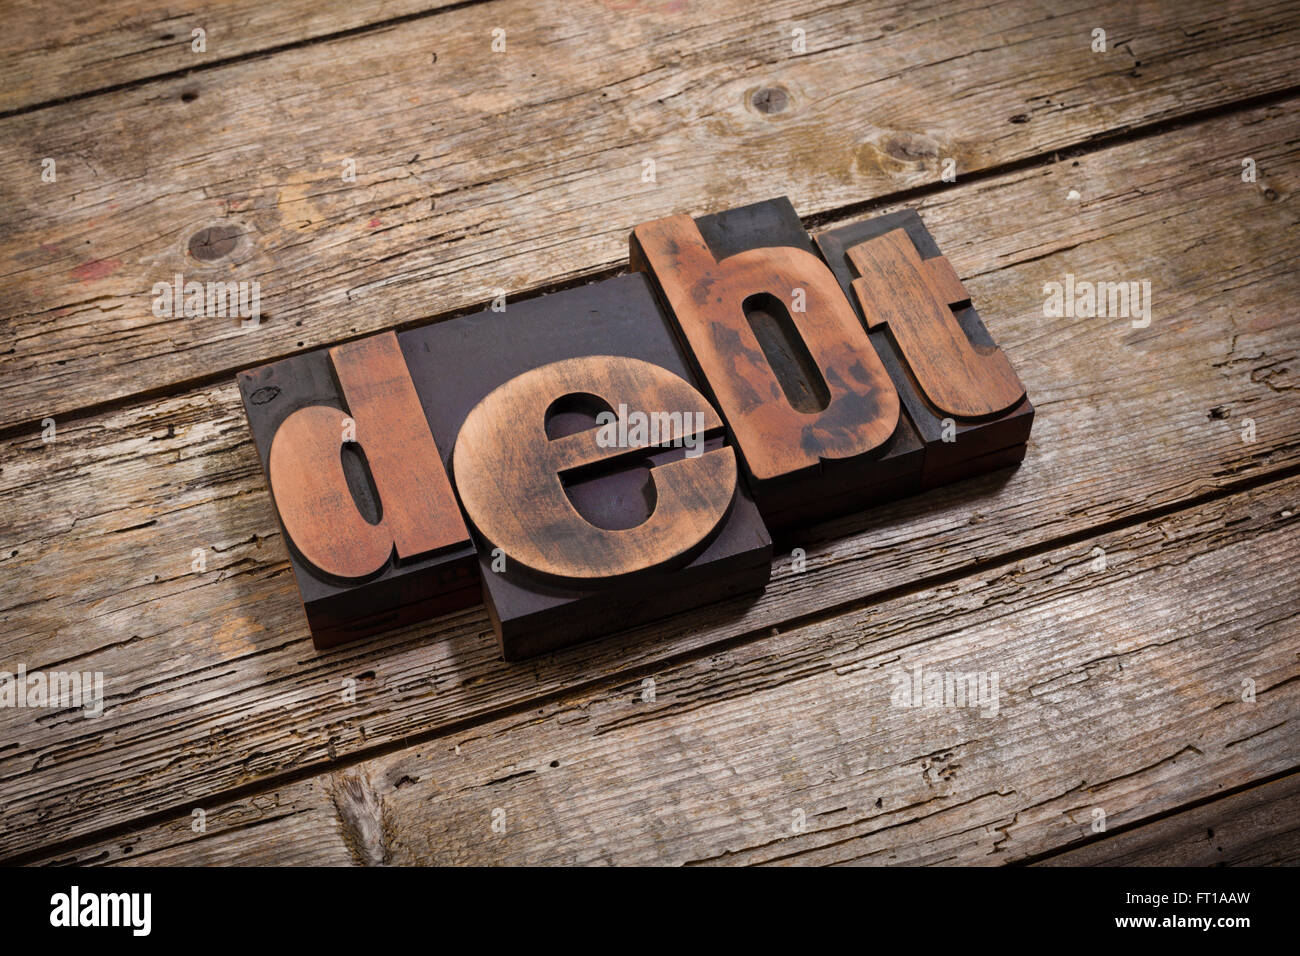 Debt, word written with vintage letterpress printing blocks on rustic wooden background, angled view - Stock Image